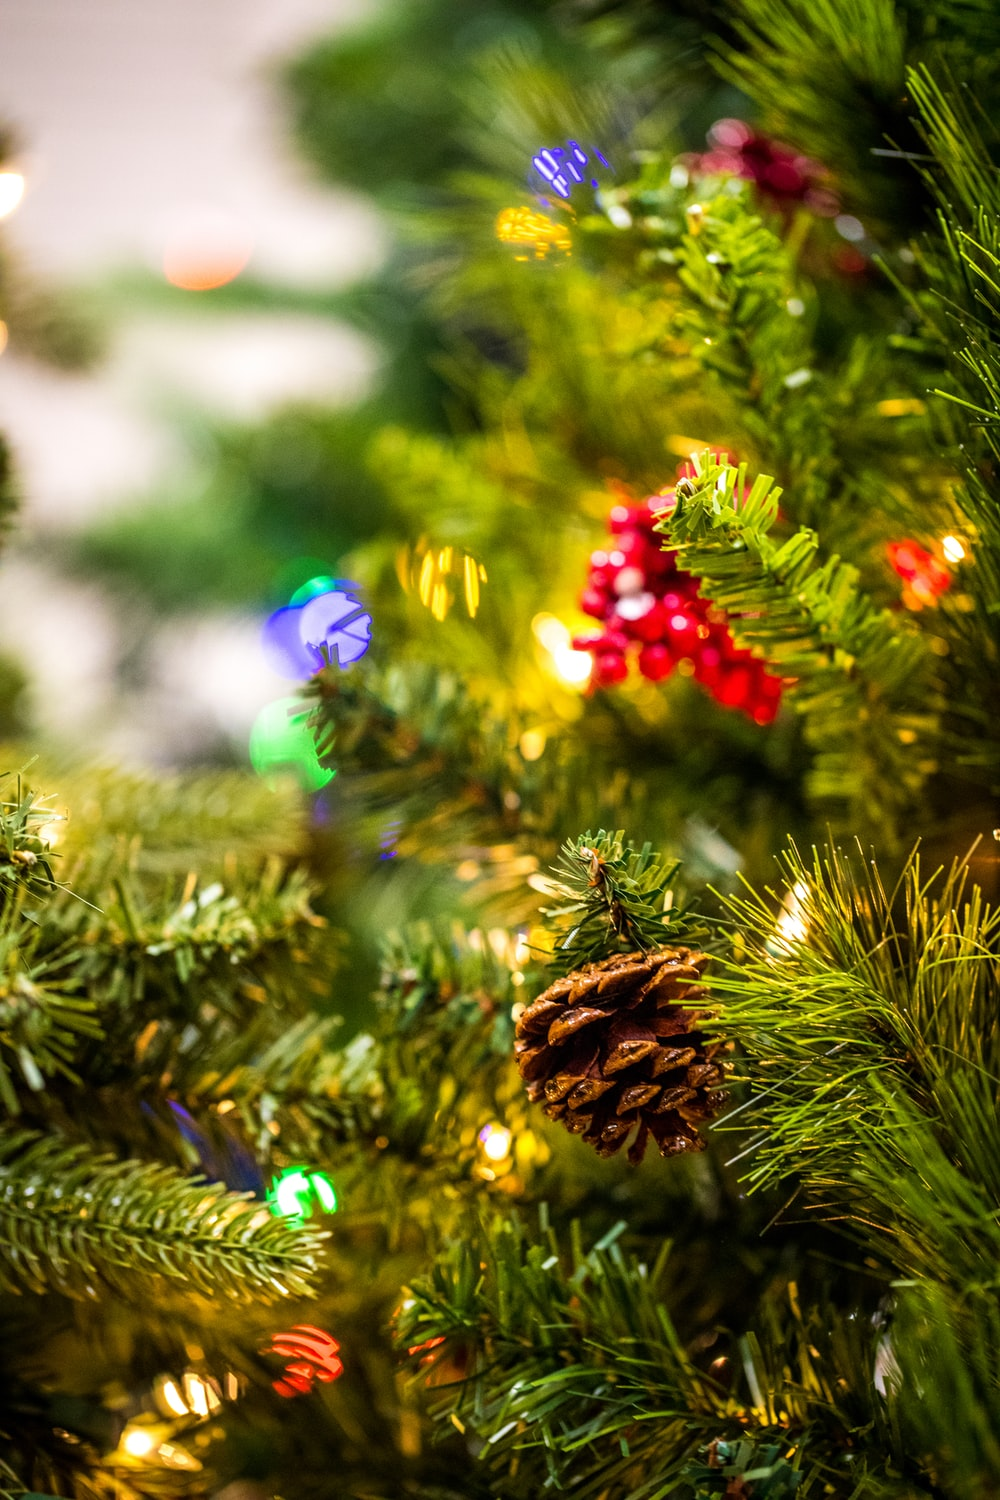 selective focus photography of pinecone and flower ornaments attached on tree